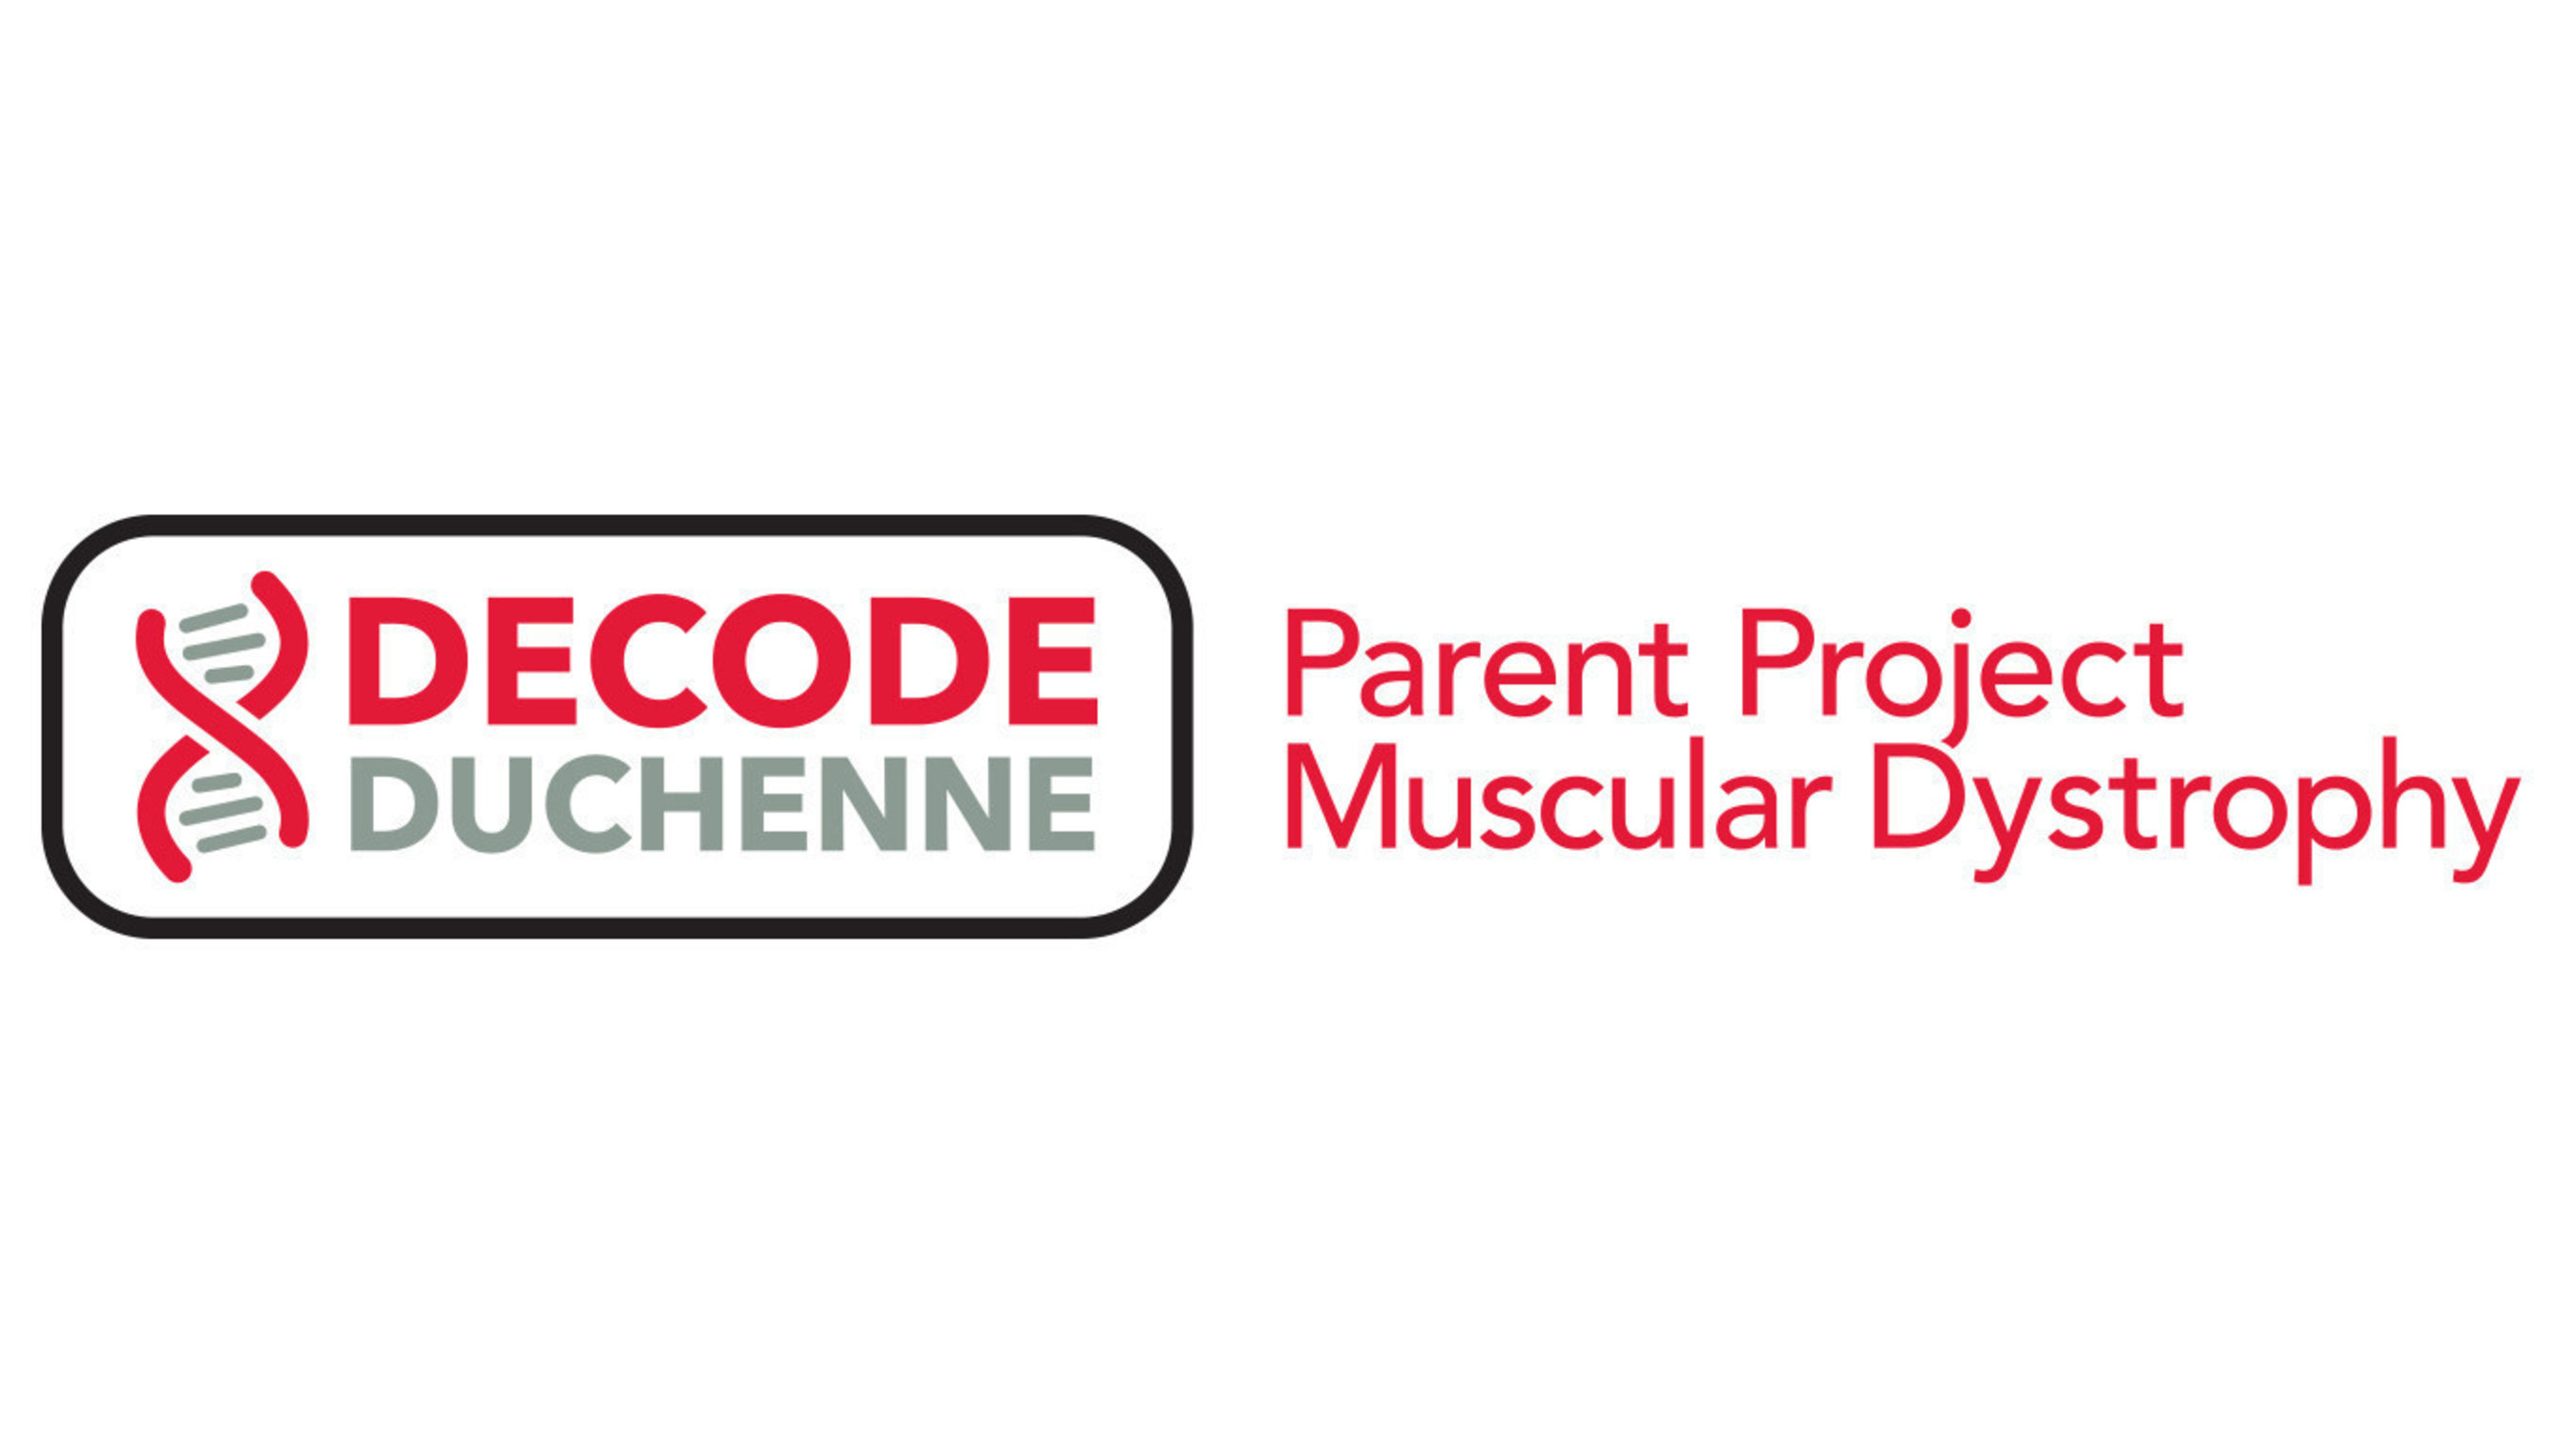 Parent Project Muscular Dystrophy Launches Next Phase of Genetic Testing Program, Decode Duchenne in collaboration with BioMarin Pharmaceutical Inc., PTC Therapeutics, and Sarepta Therapeutics